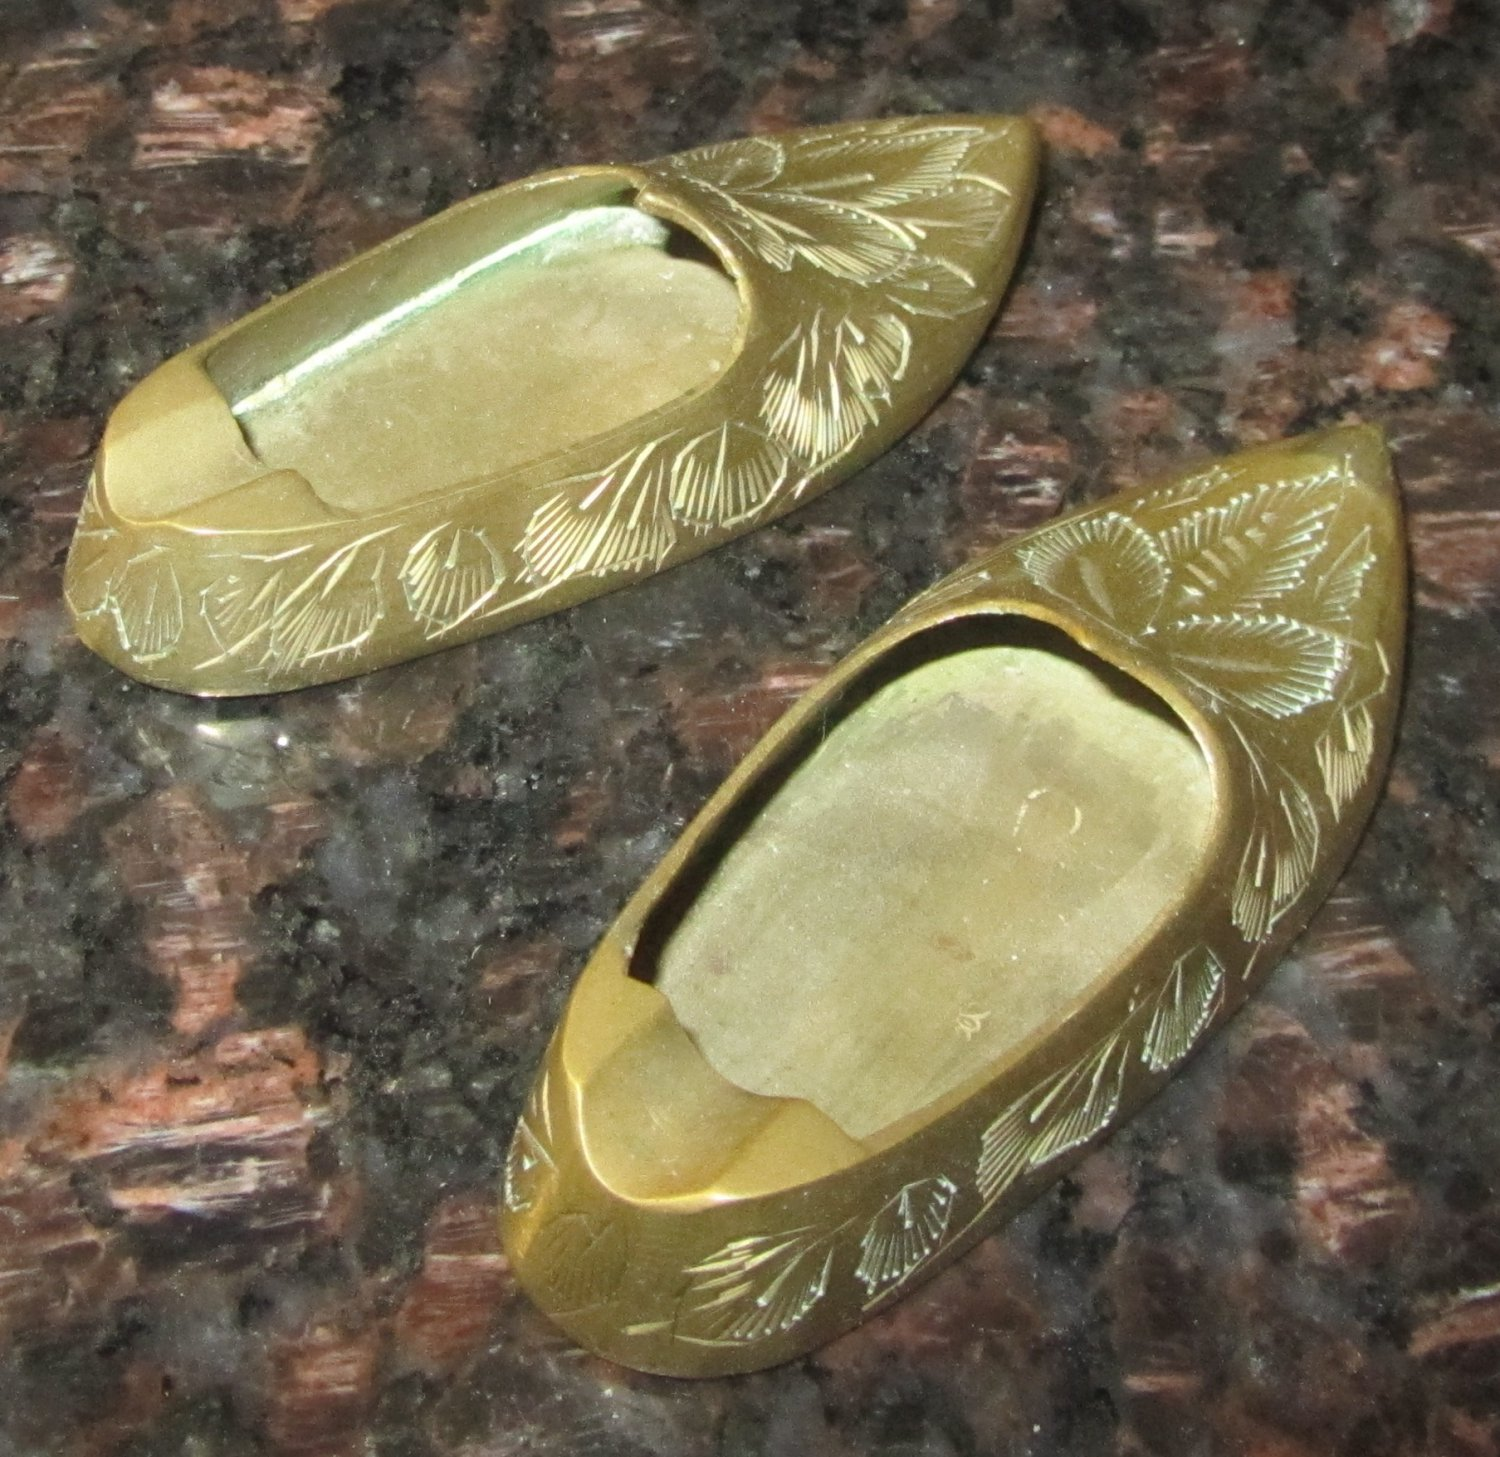 VINTAGE SOLID BRASS SINGLE INDIVIDUAL ASHTRAY SHOES SLIPPERS SET OF 2